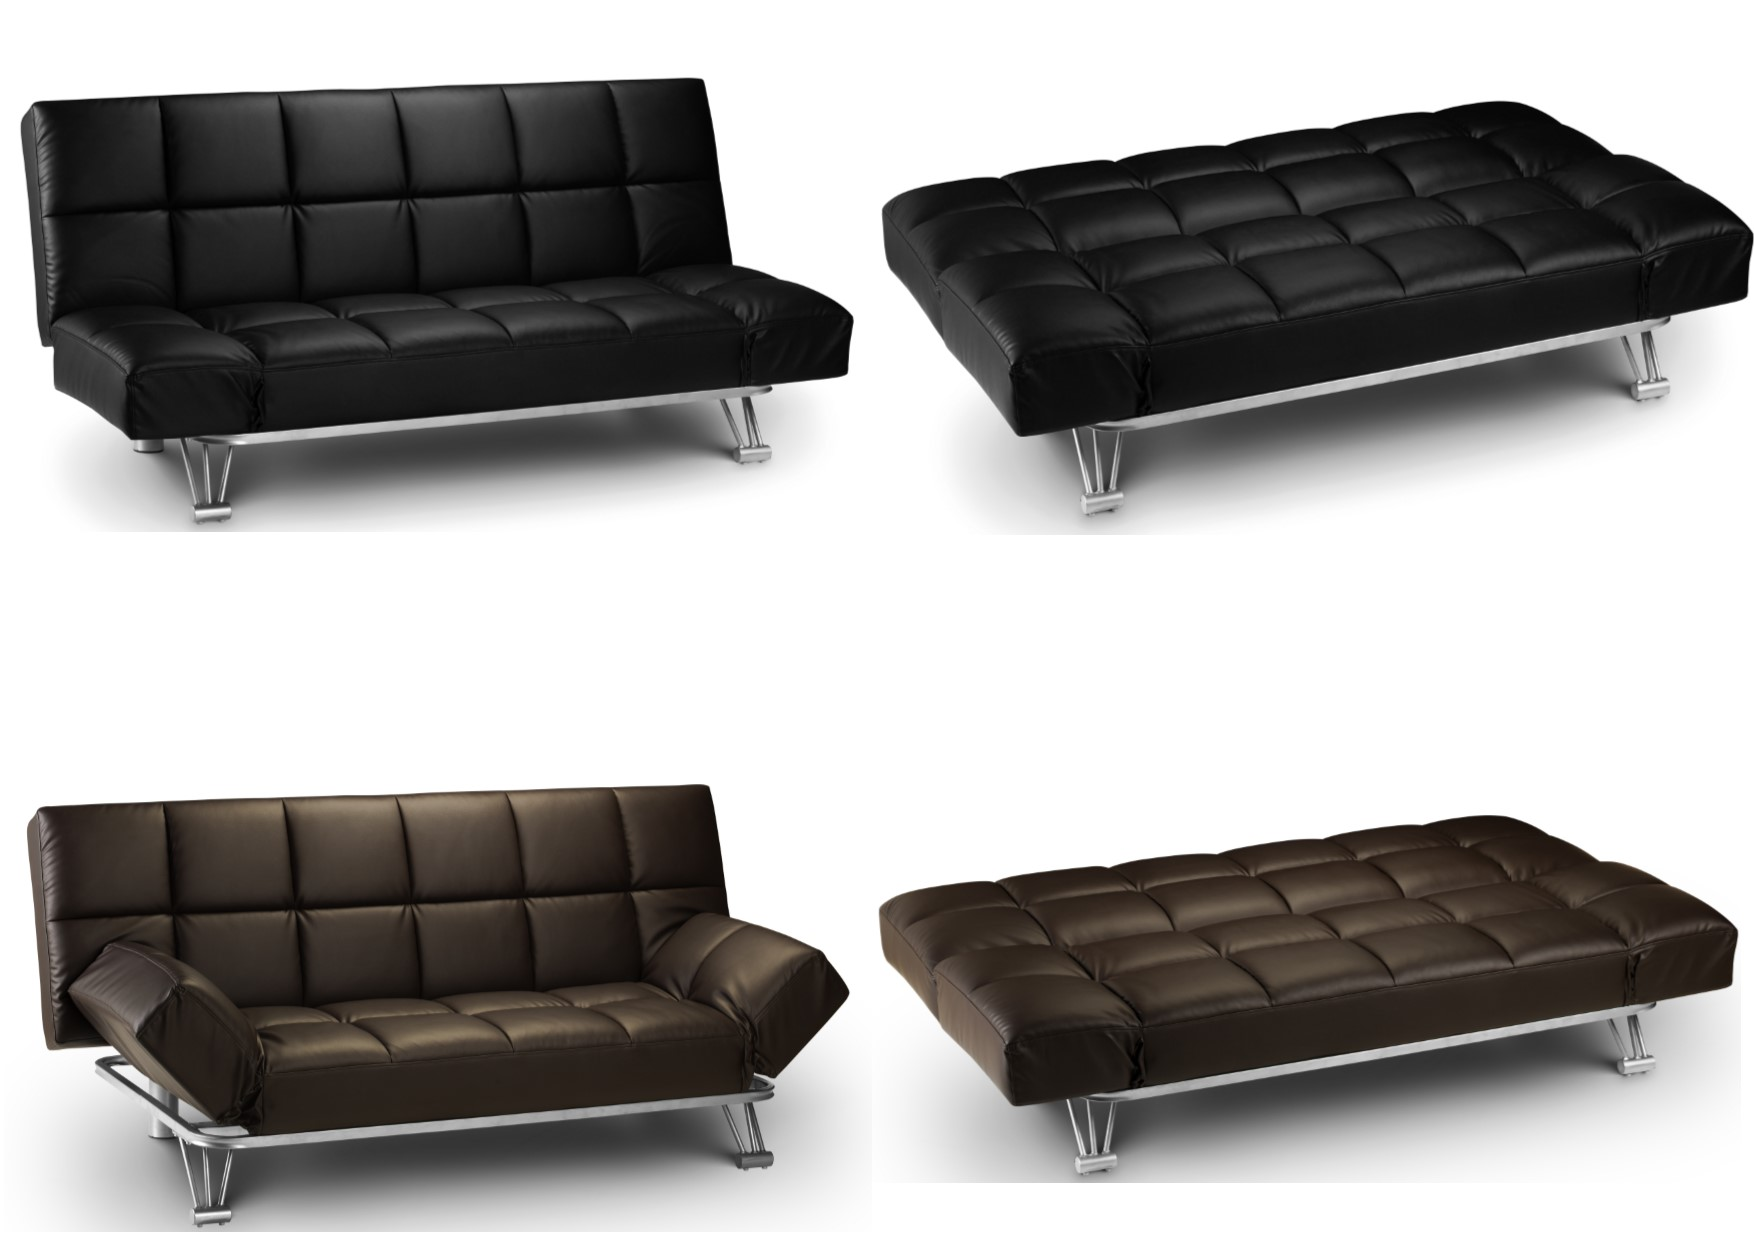 Details about Julian Bowen Manhattan Faux Leather Sofa Bed Settee - Brown  or Black